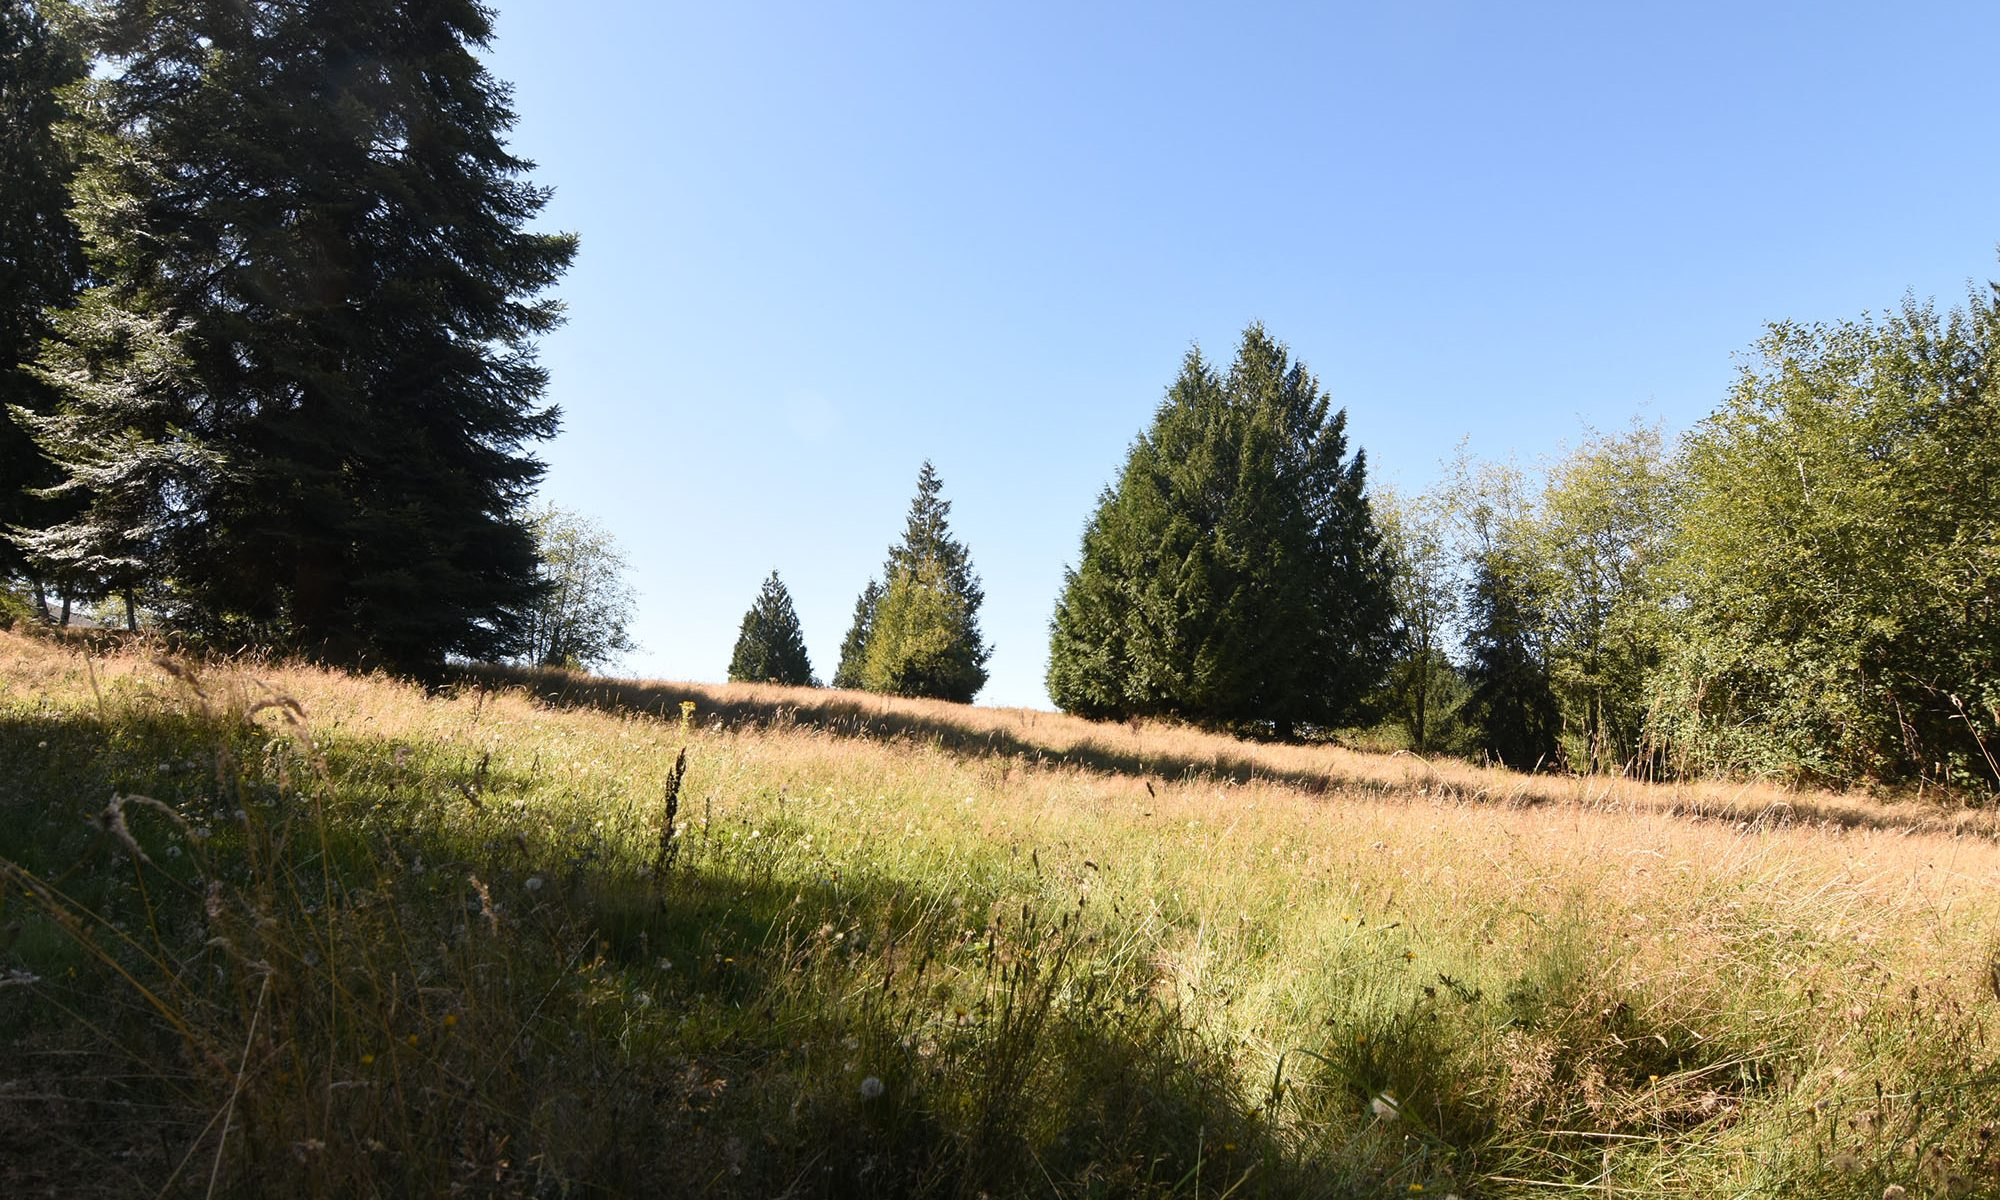 Grassy pasture with cedar groves and other trees spotted in the meadow